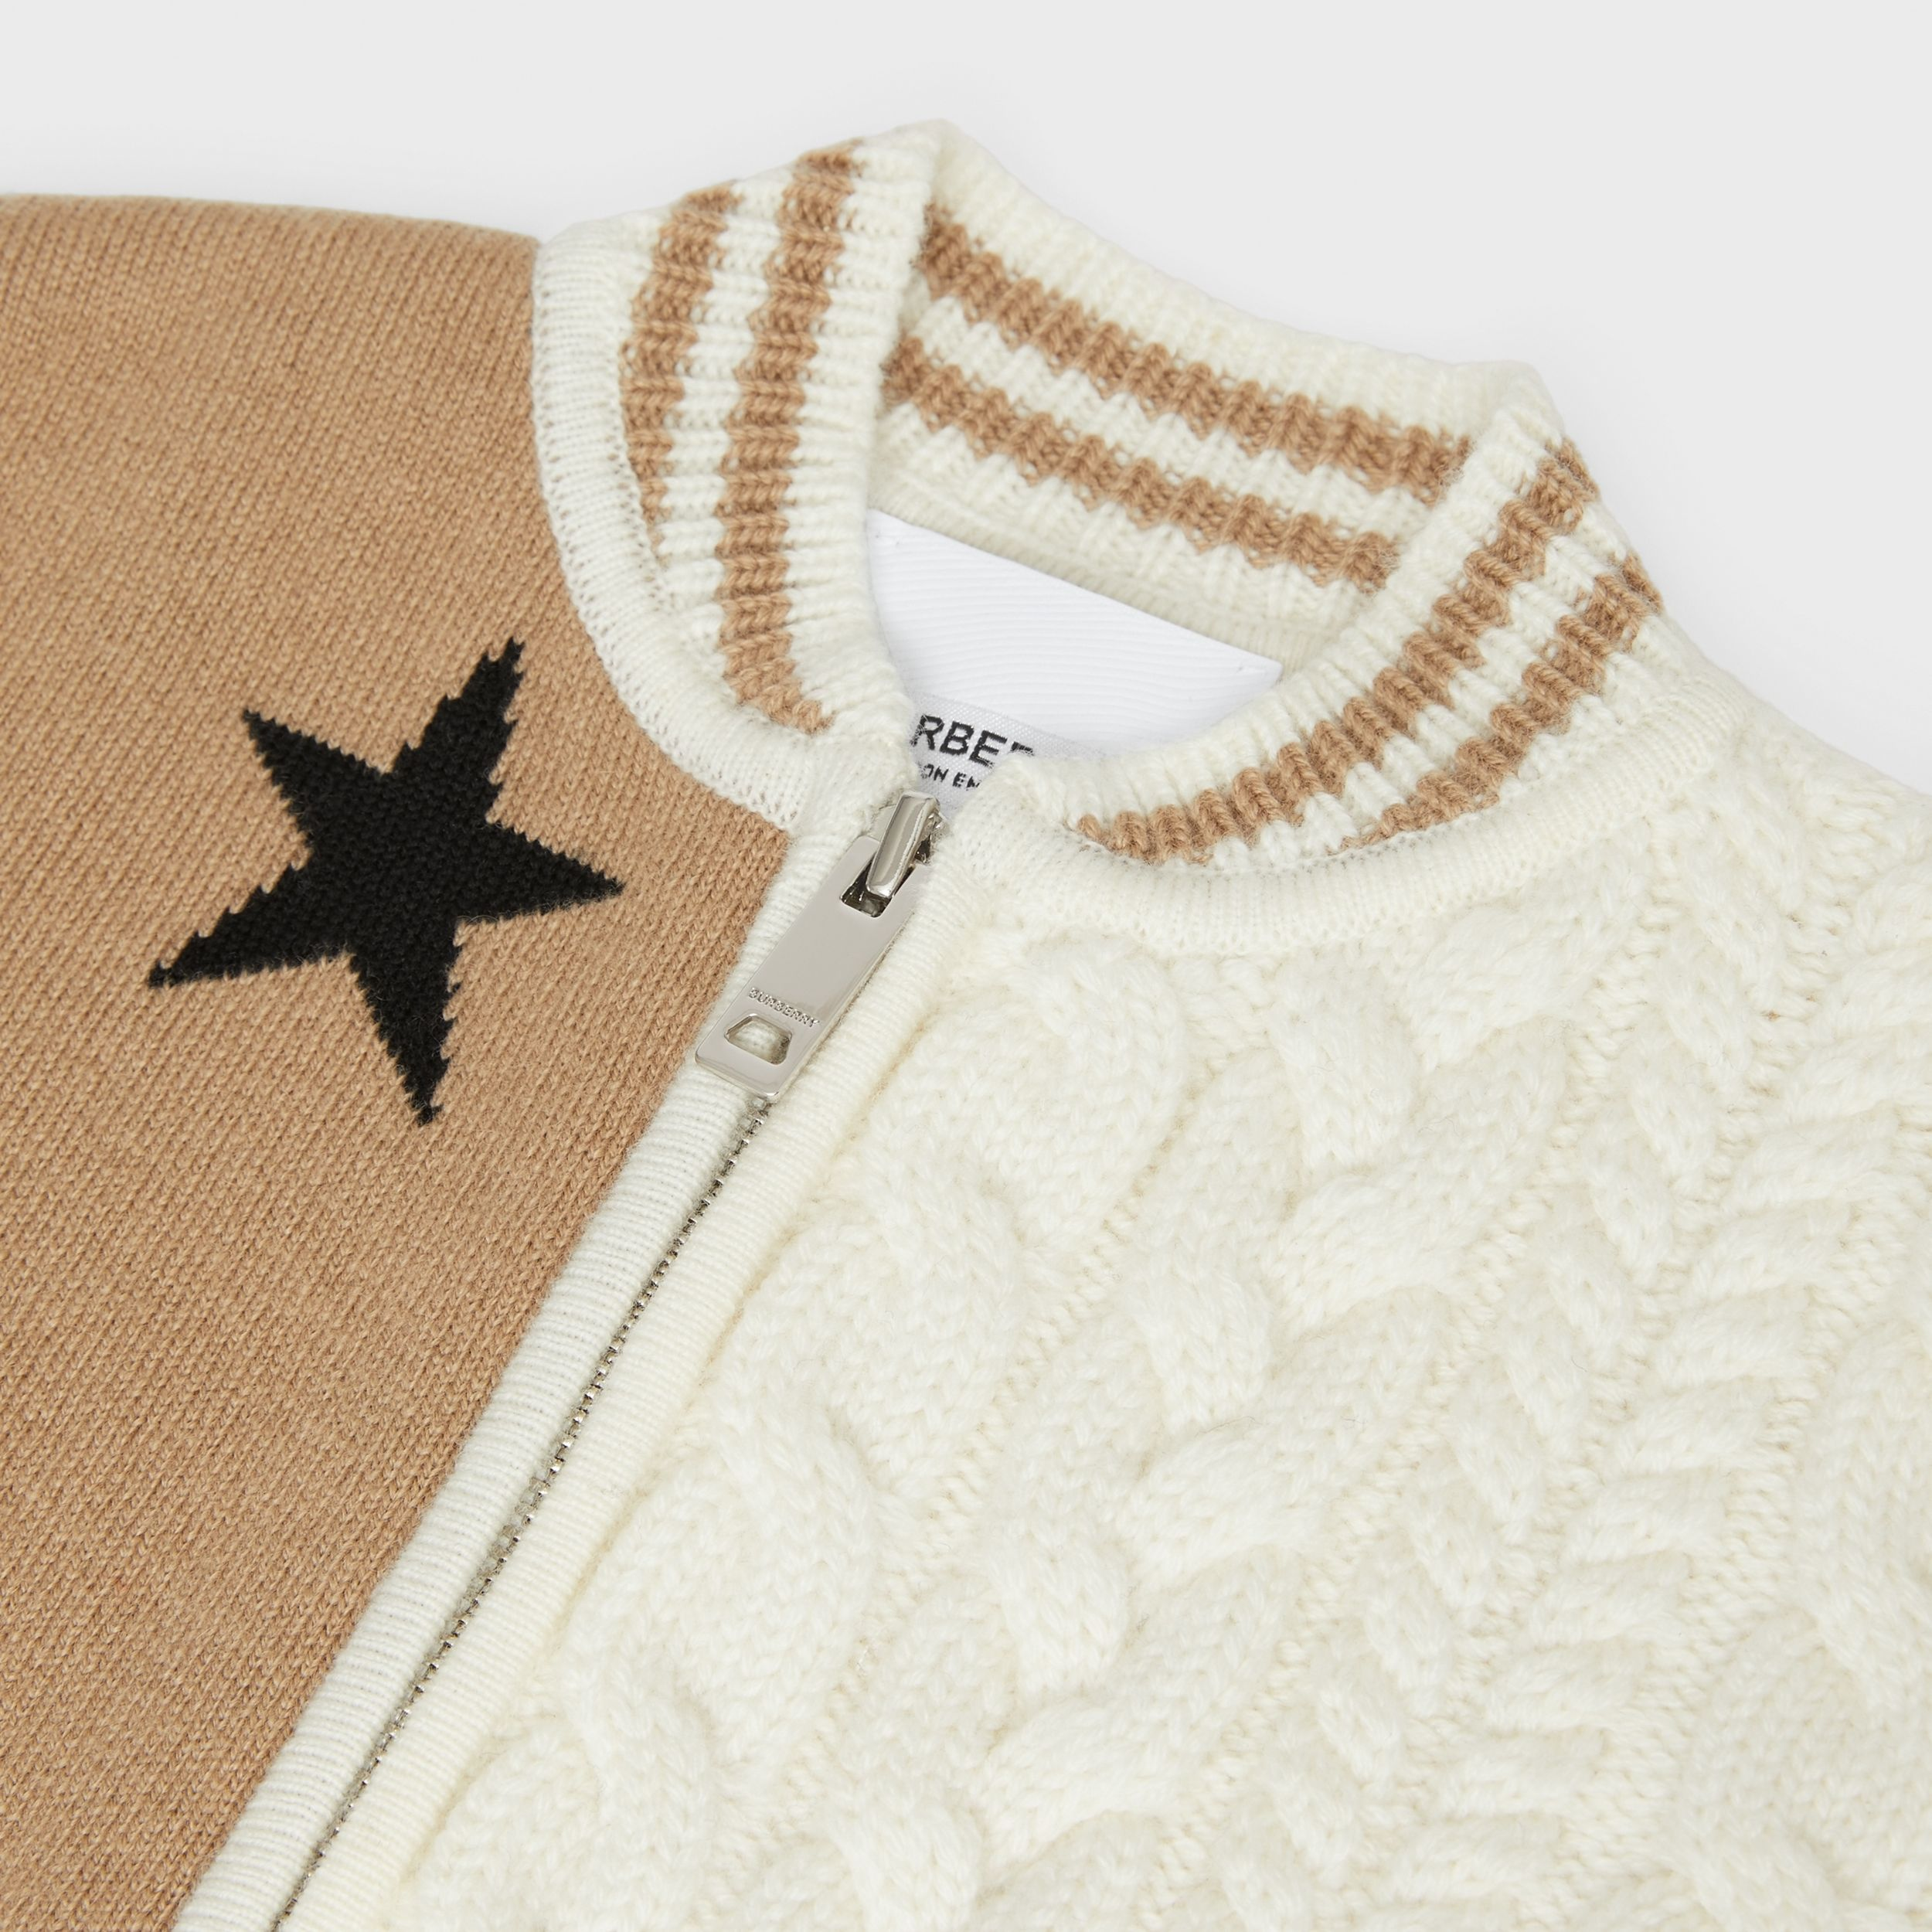 Star and Monogram Motif Wool Cashmere Blend Jacket in Archive Beige - Children | Burberry Hong Kong S.A.R. - 2